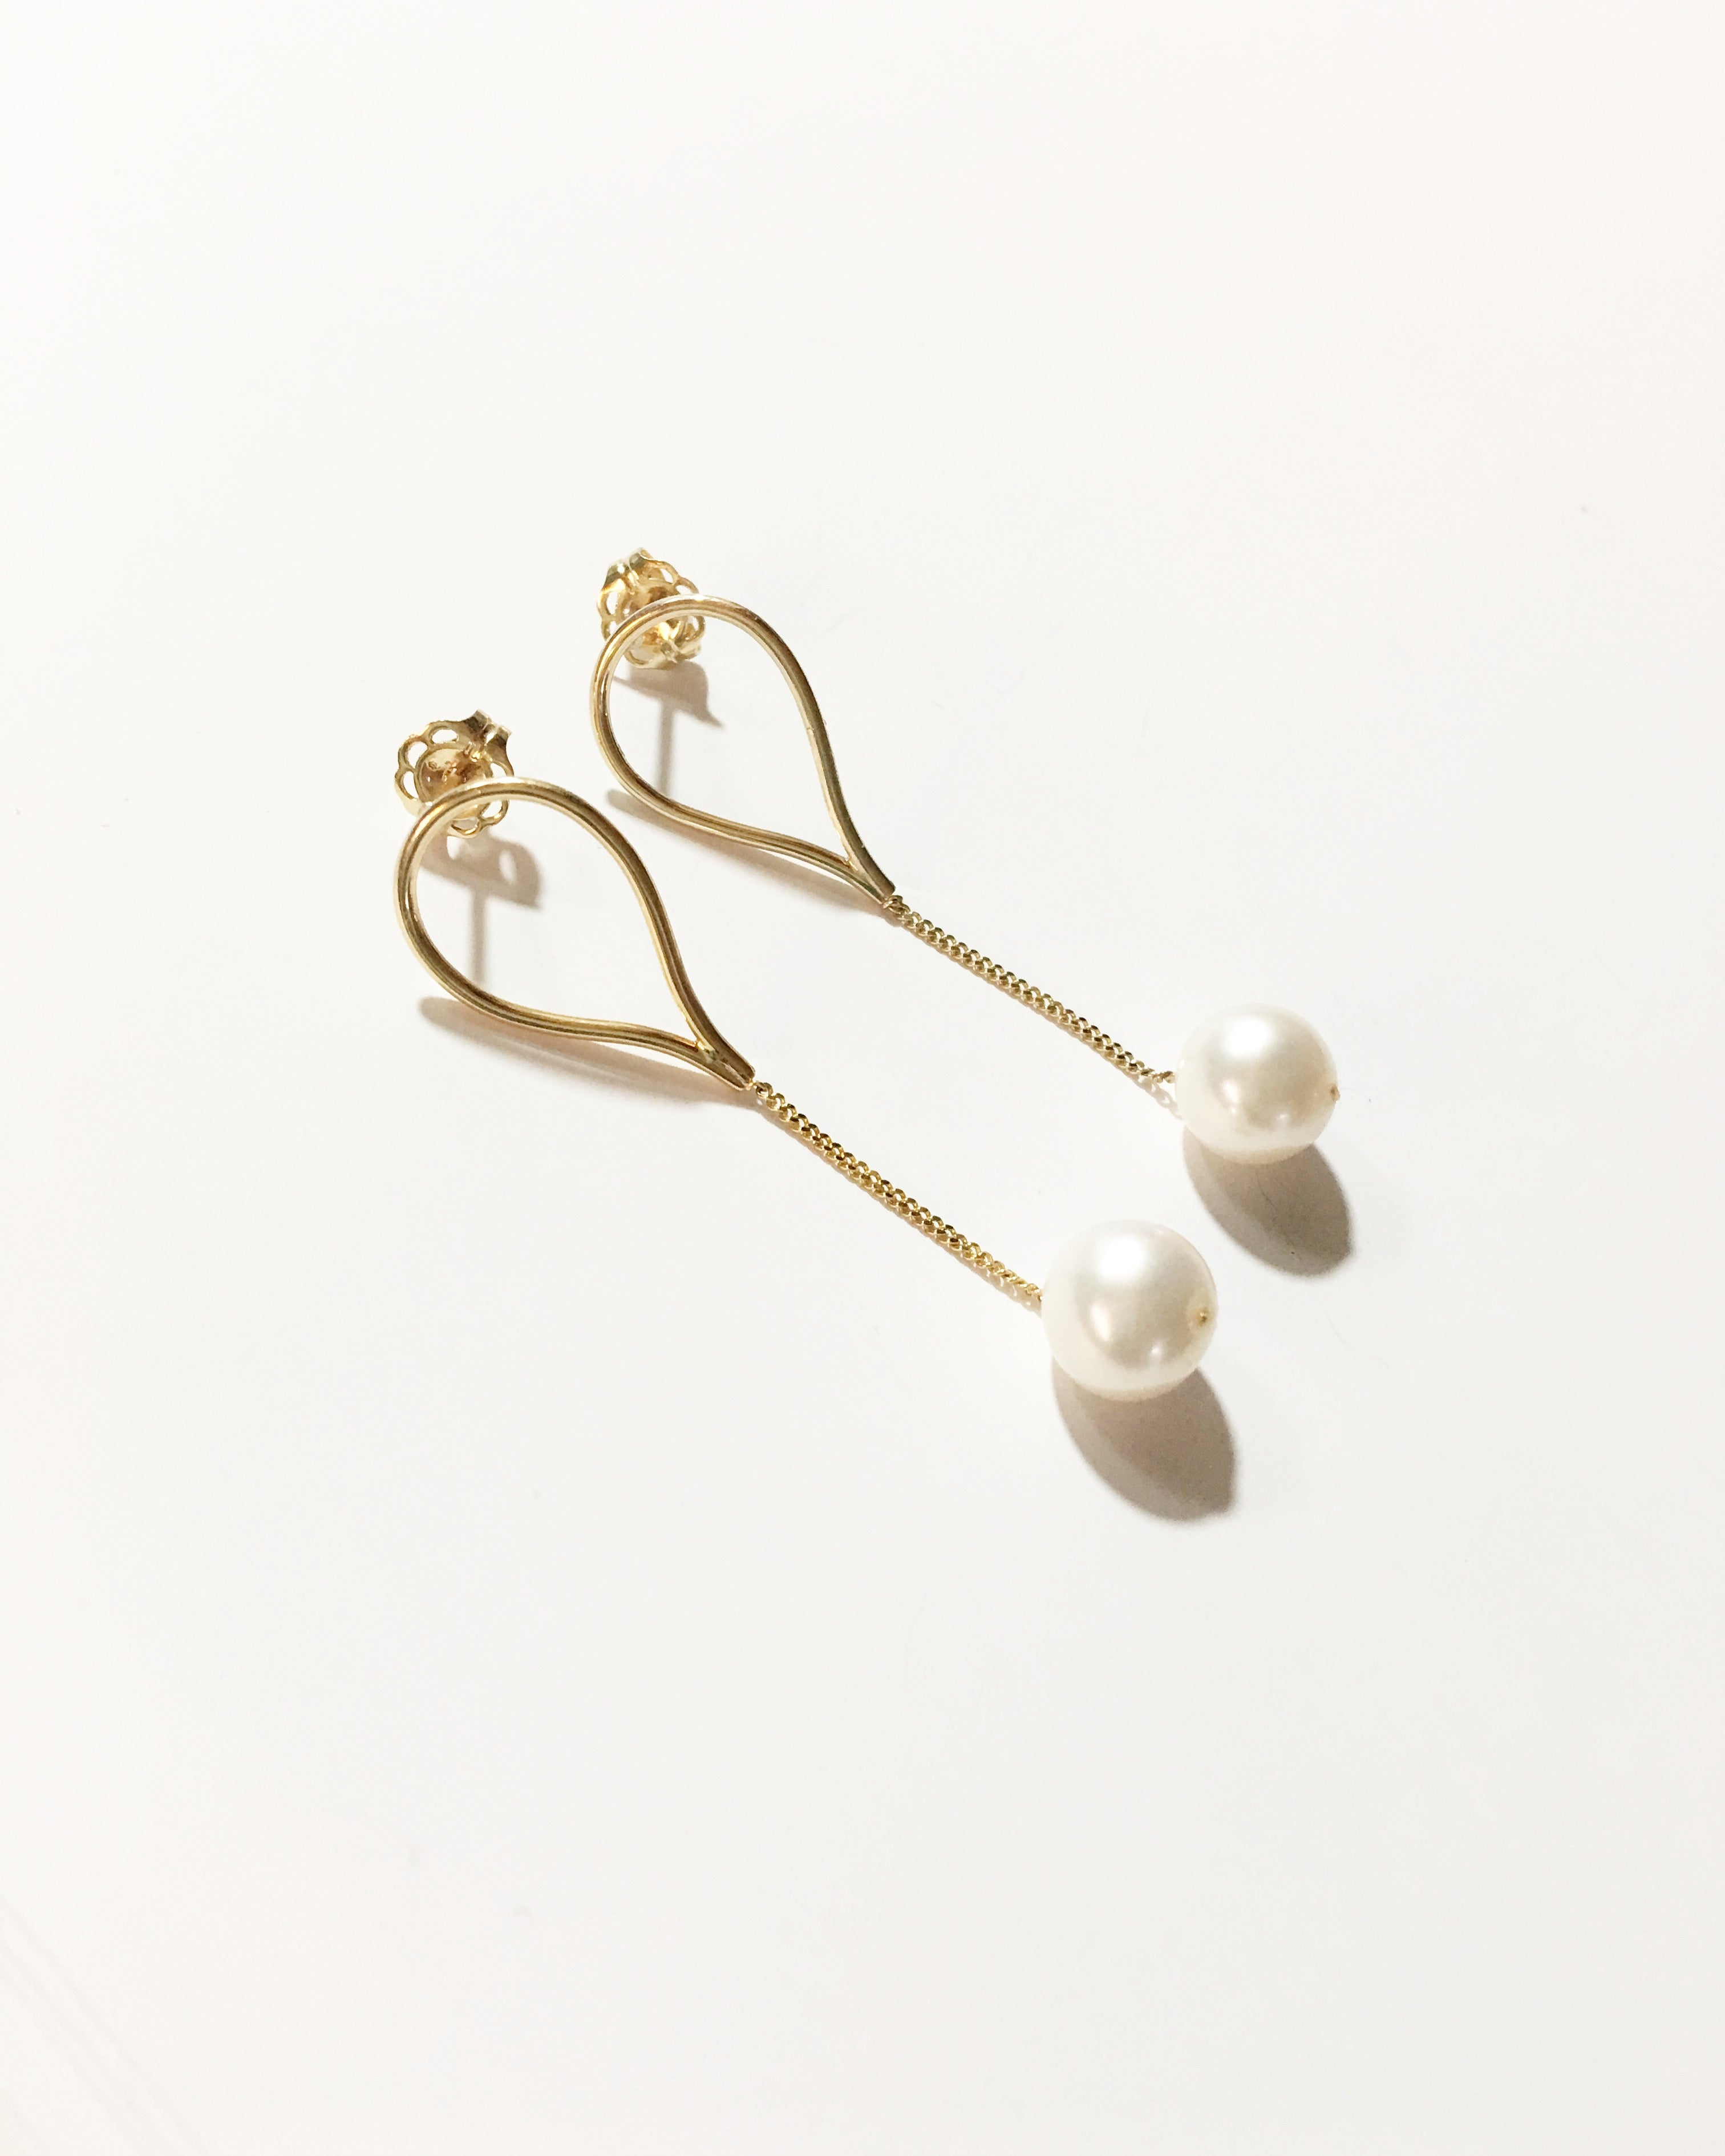 Mini Aqua Earrings | 9K Yellow Gold